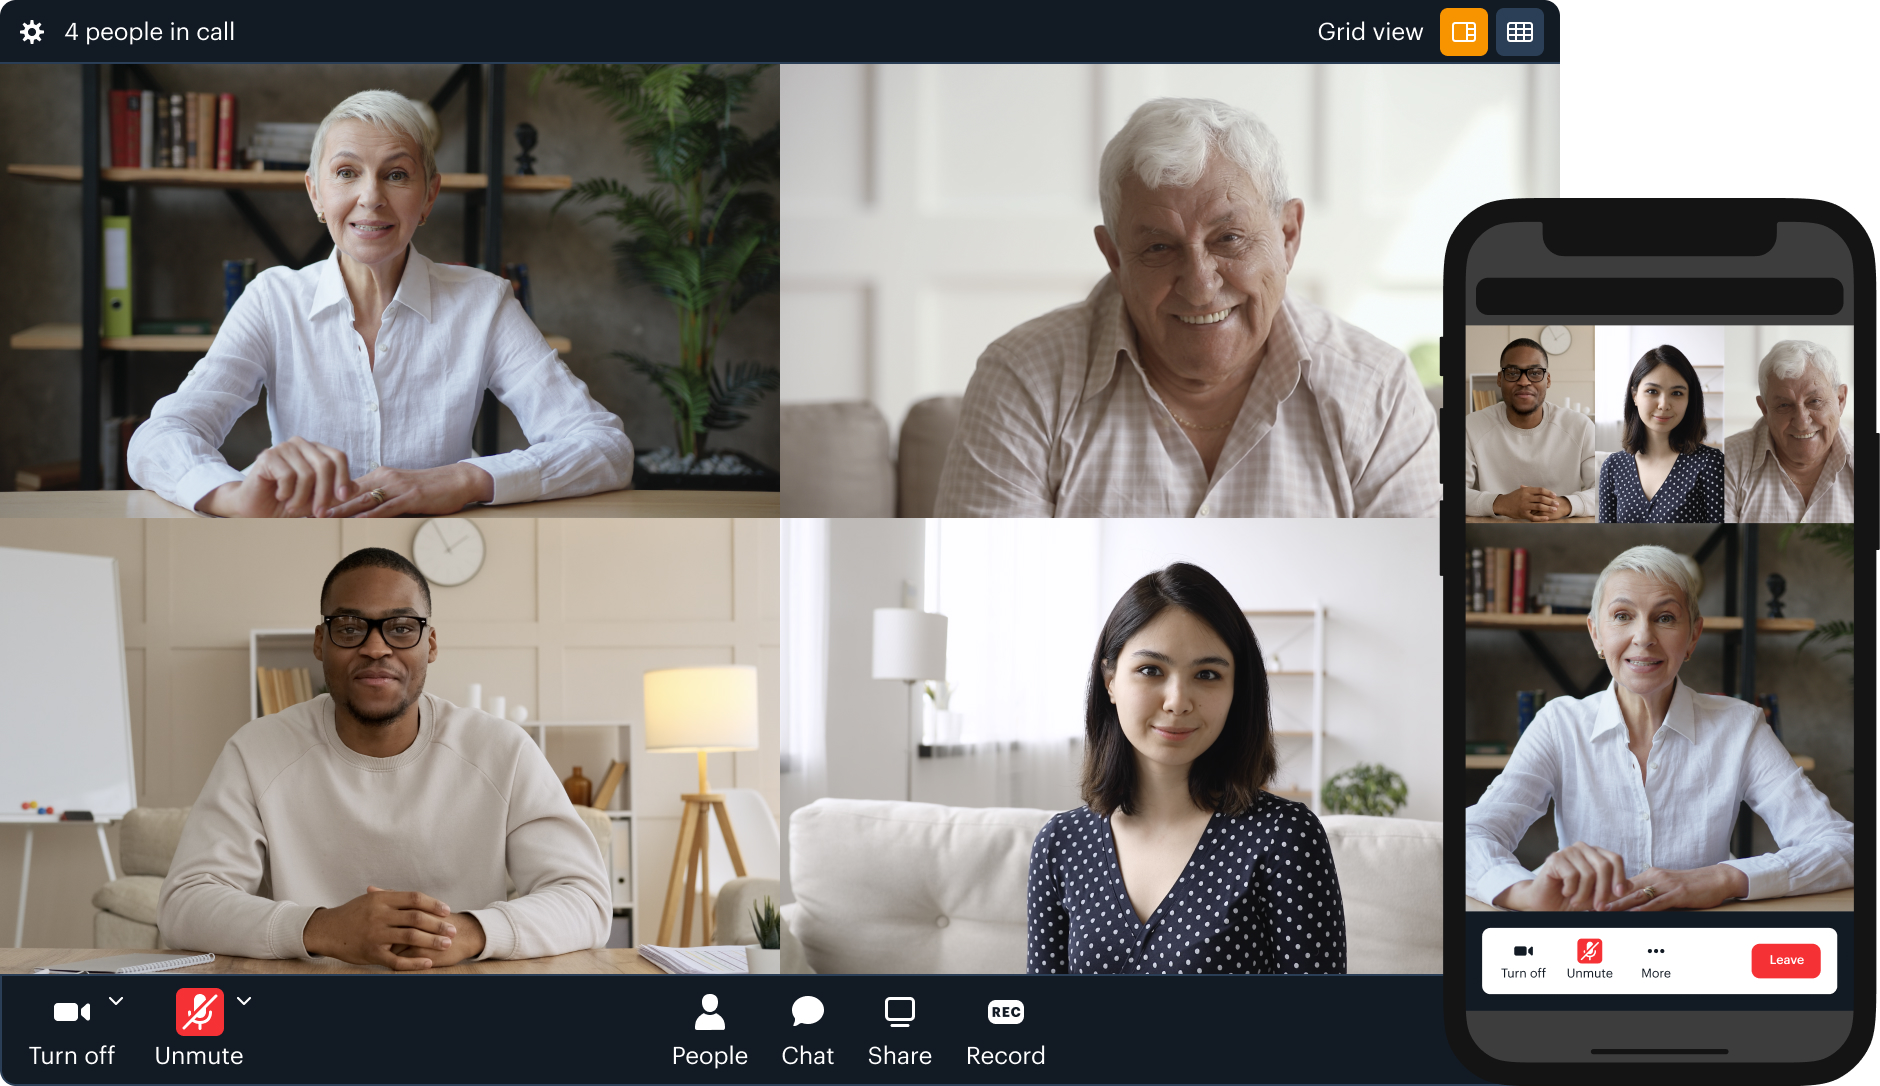 Daily can help you add video chat to your websites and apps in minutes.